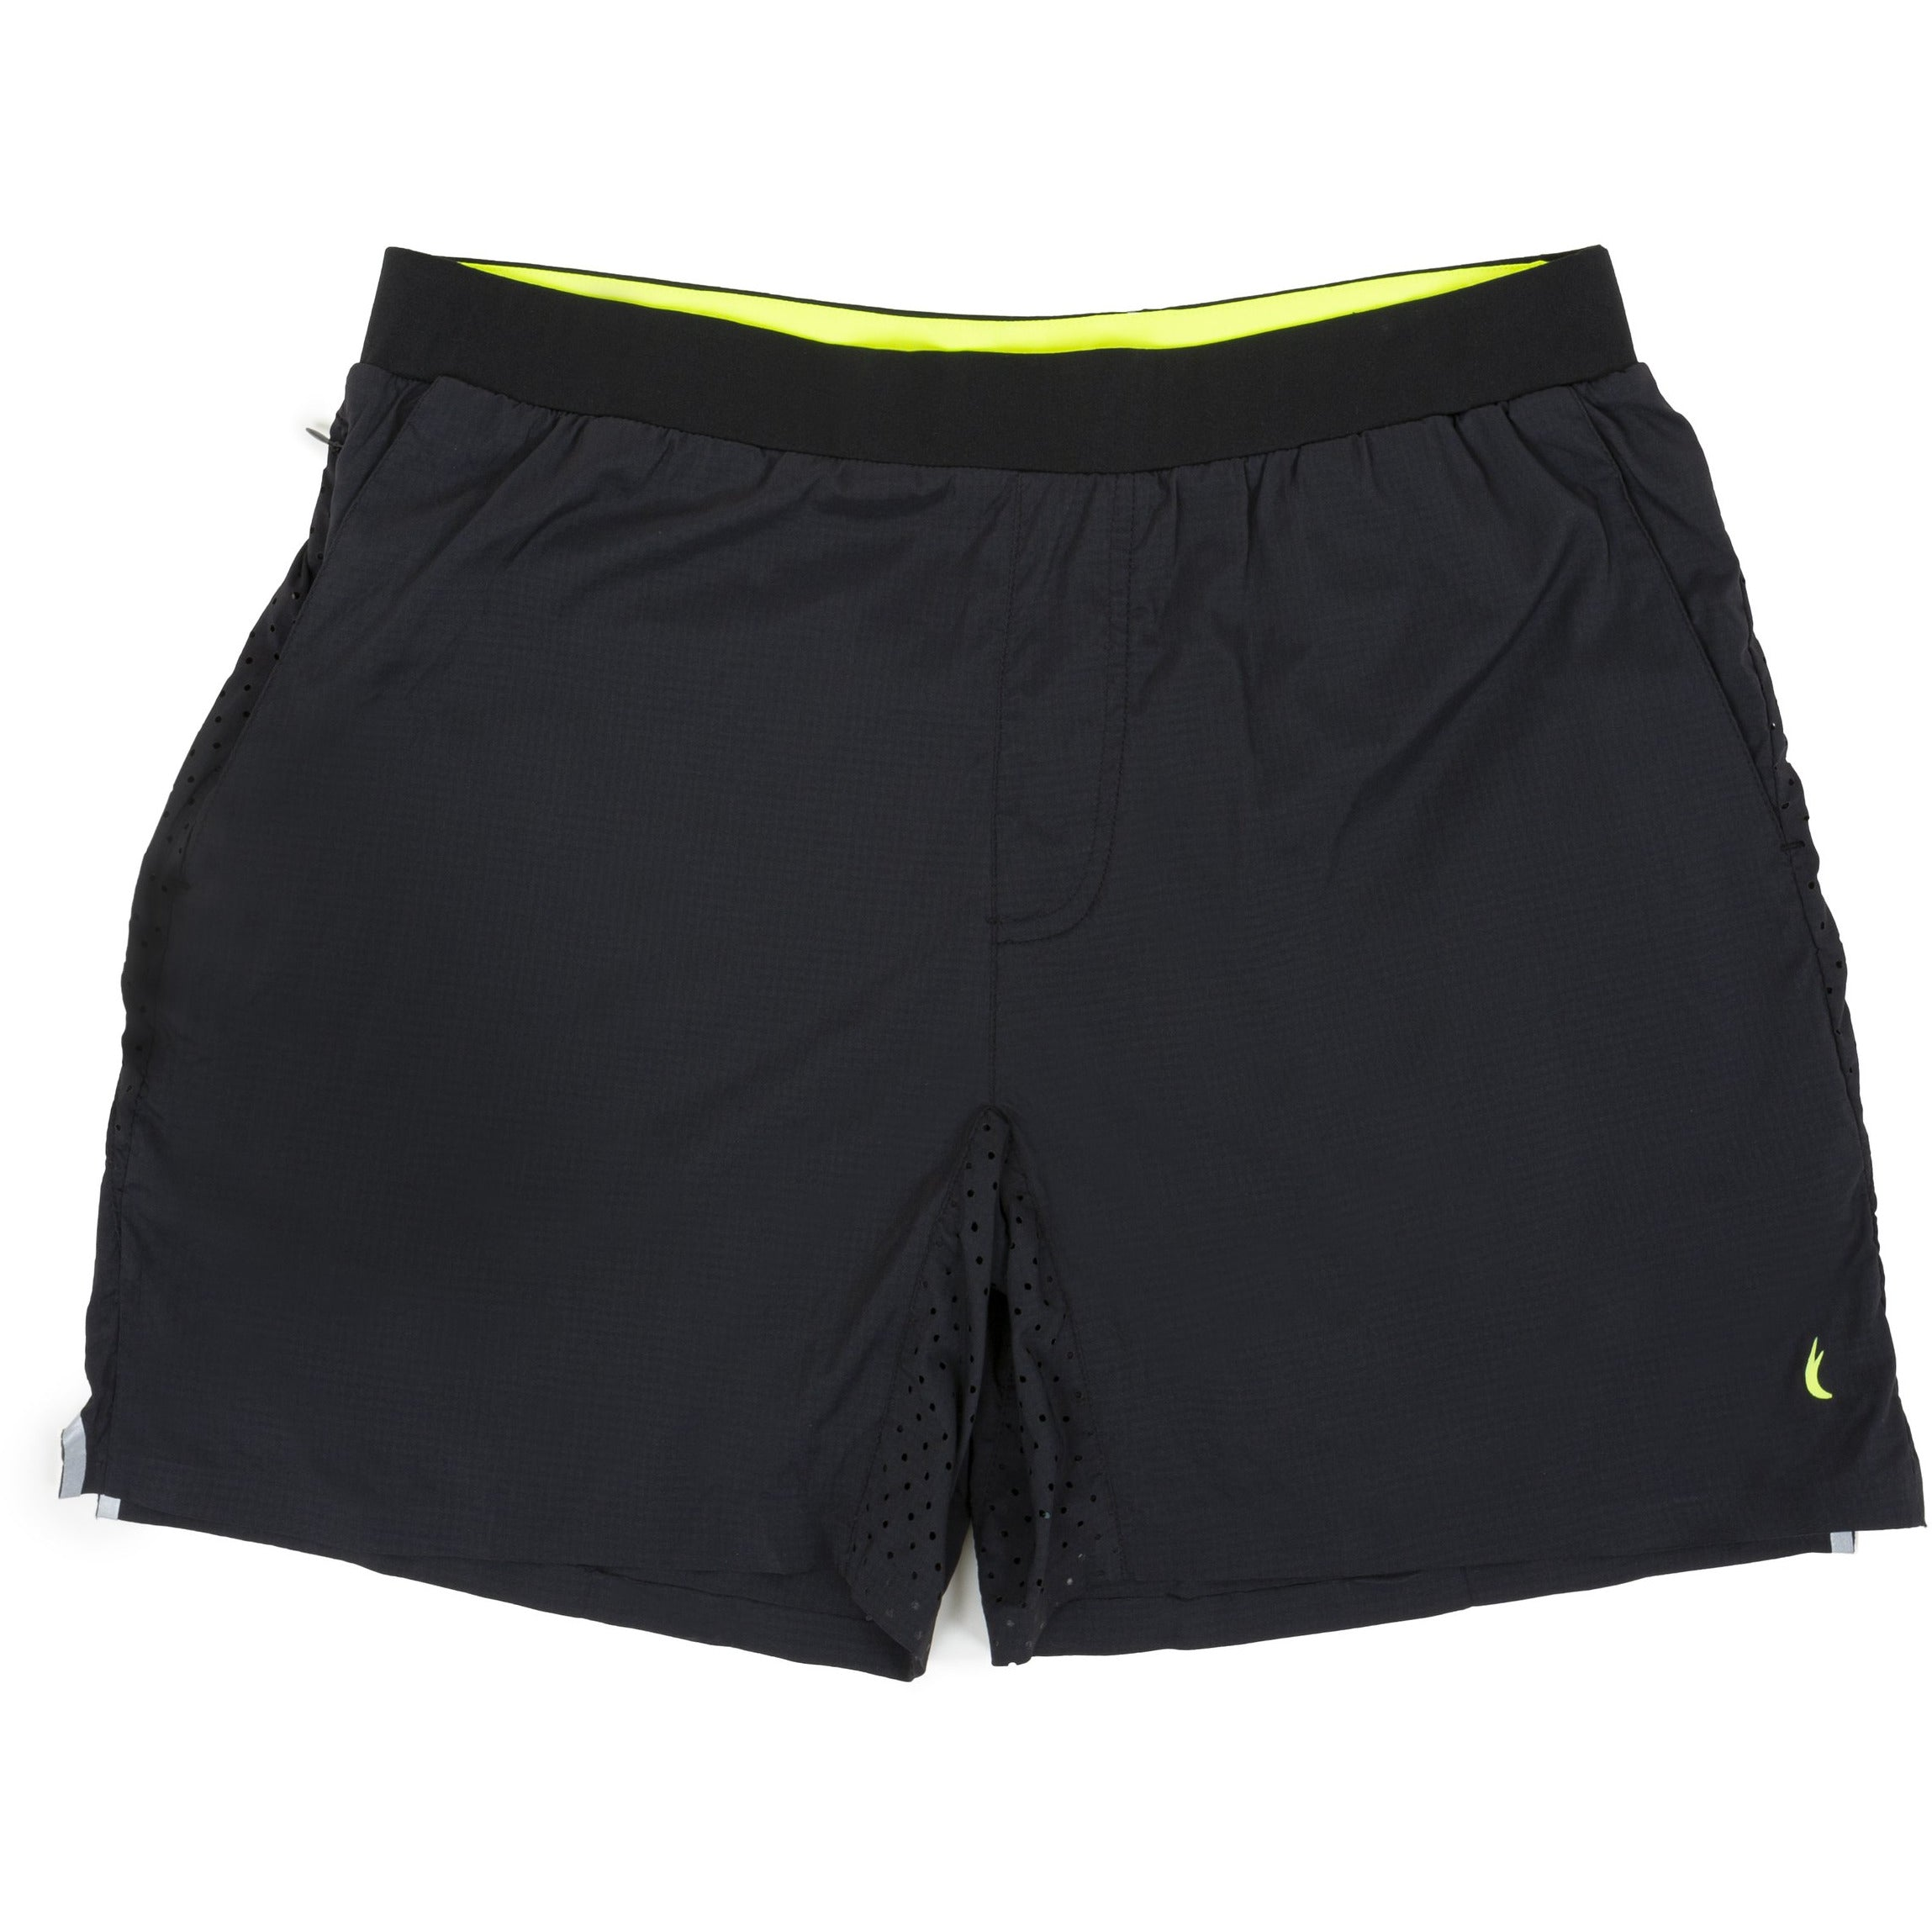 "The Bouldin Short - Black on Yellow 6.5"" 2 in 1"